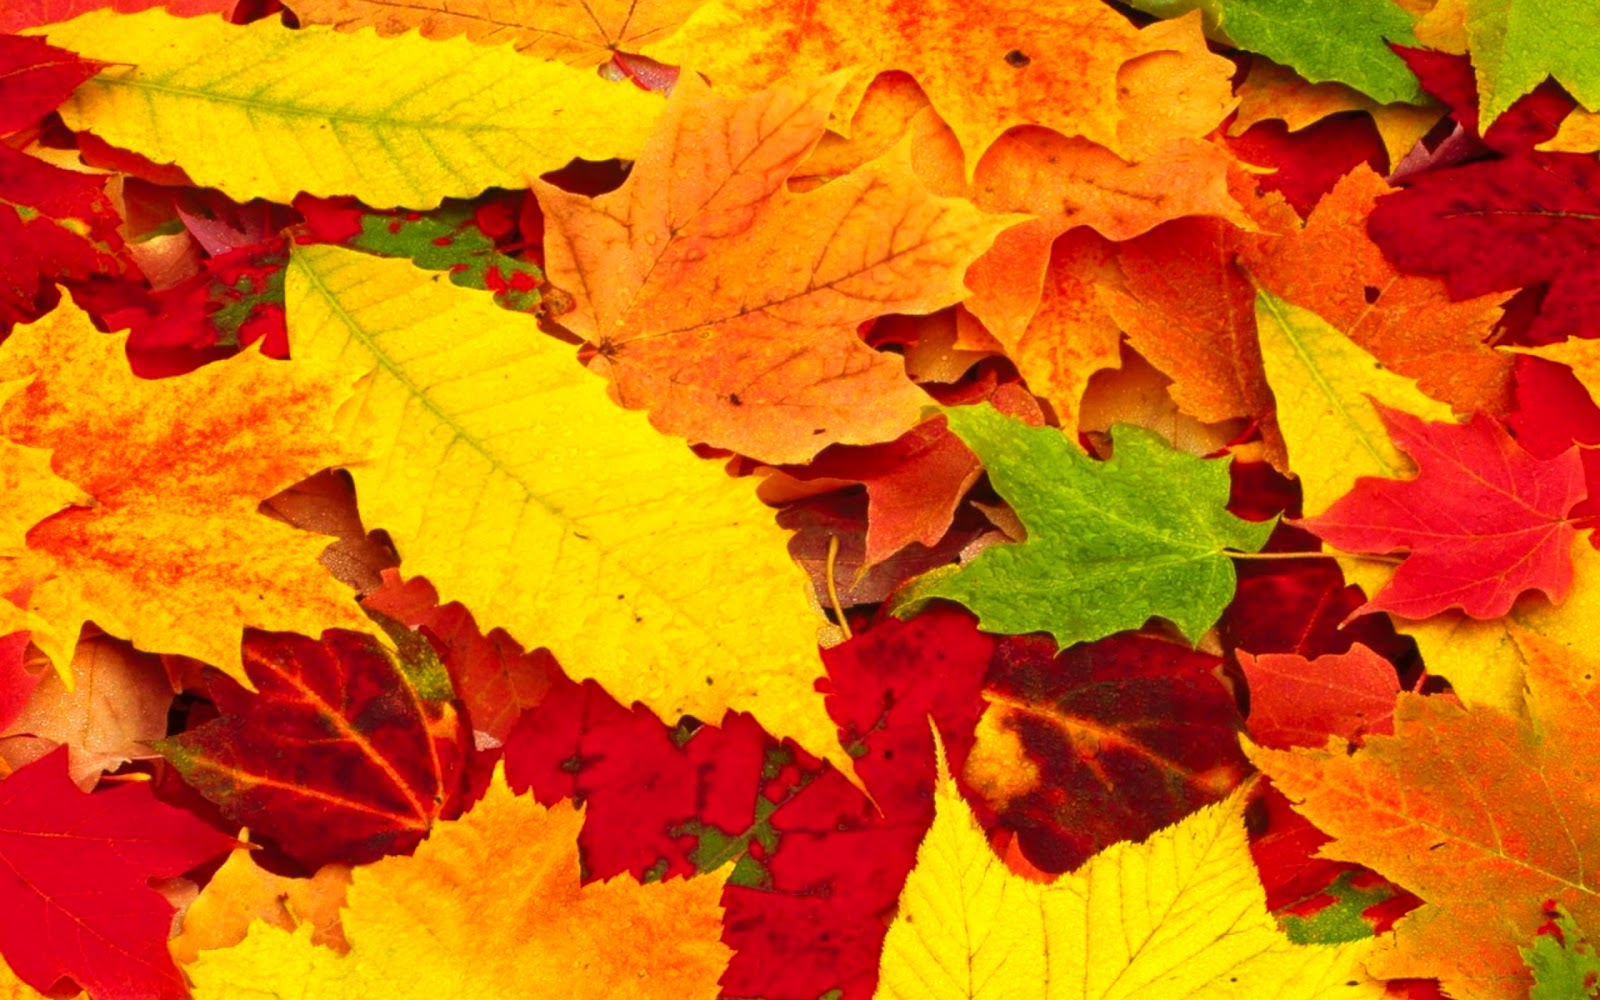 Labels: Red Autumn Leaves Photography HD Wallpapers For